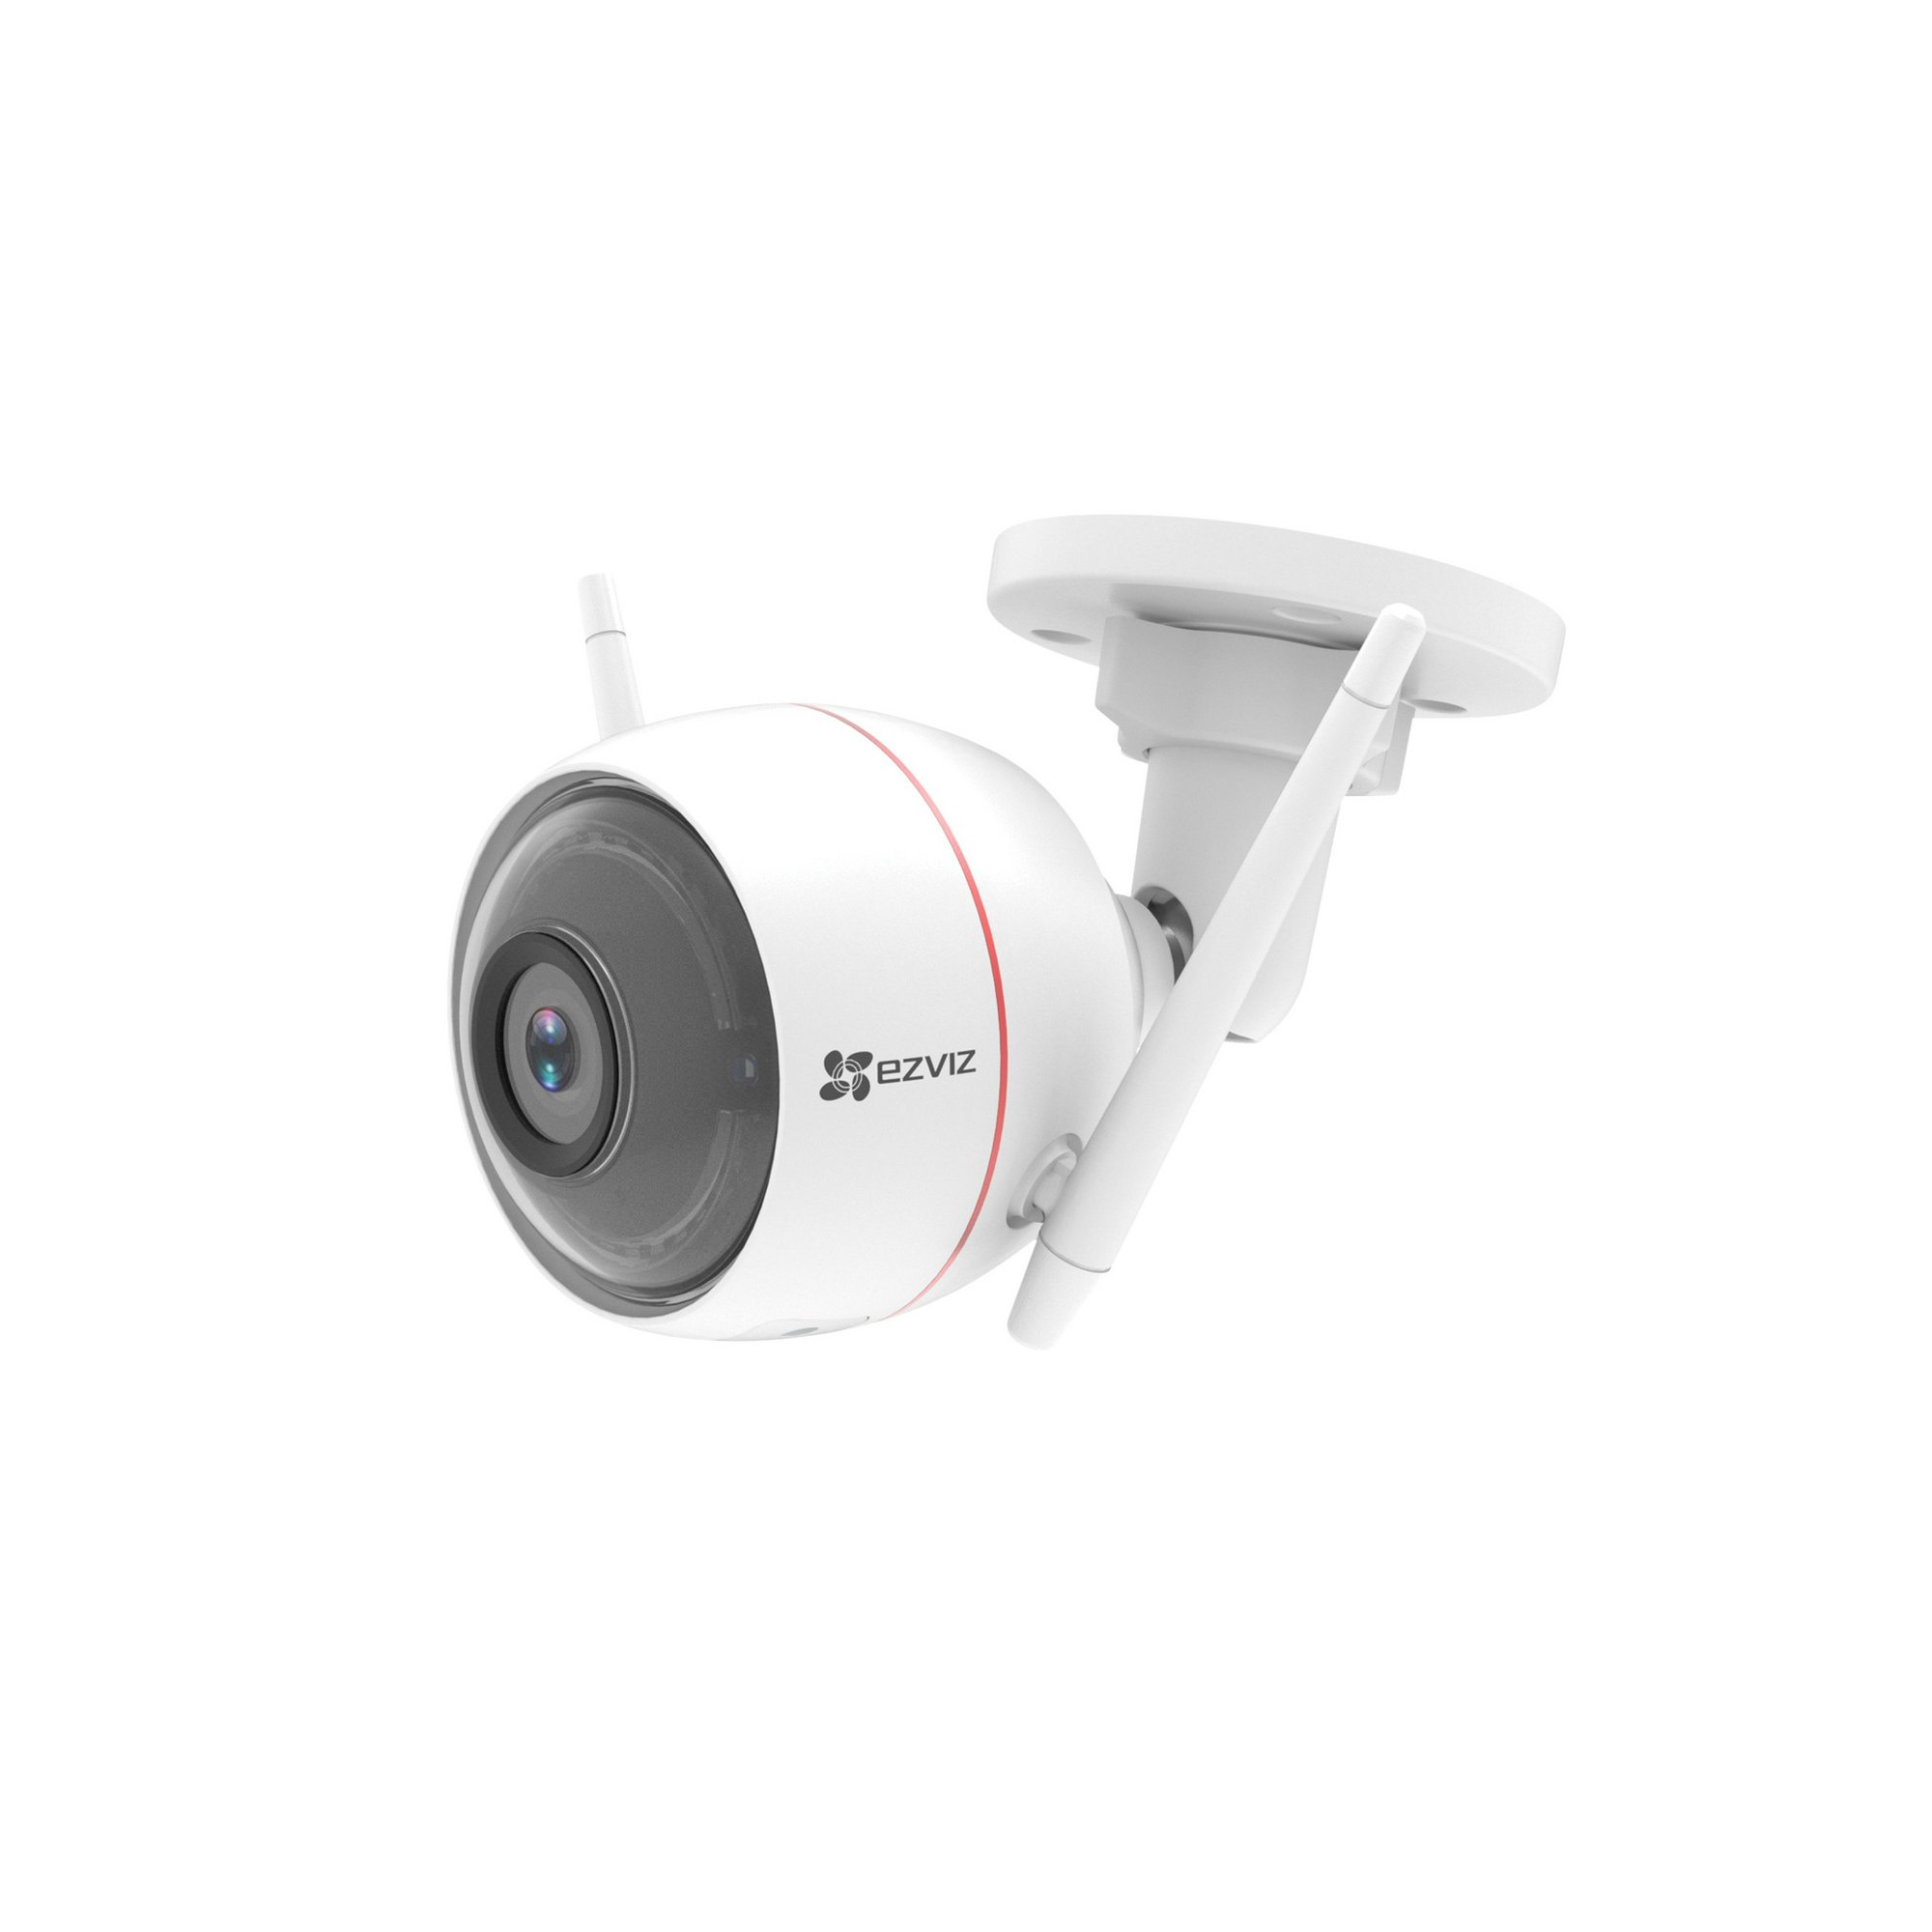 Image of EZVIZ C3W Full HD Wi-Fi Outdoor Camera